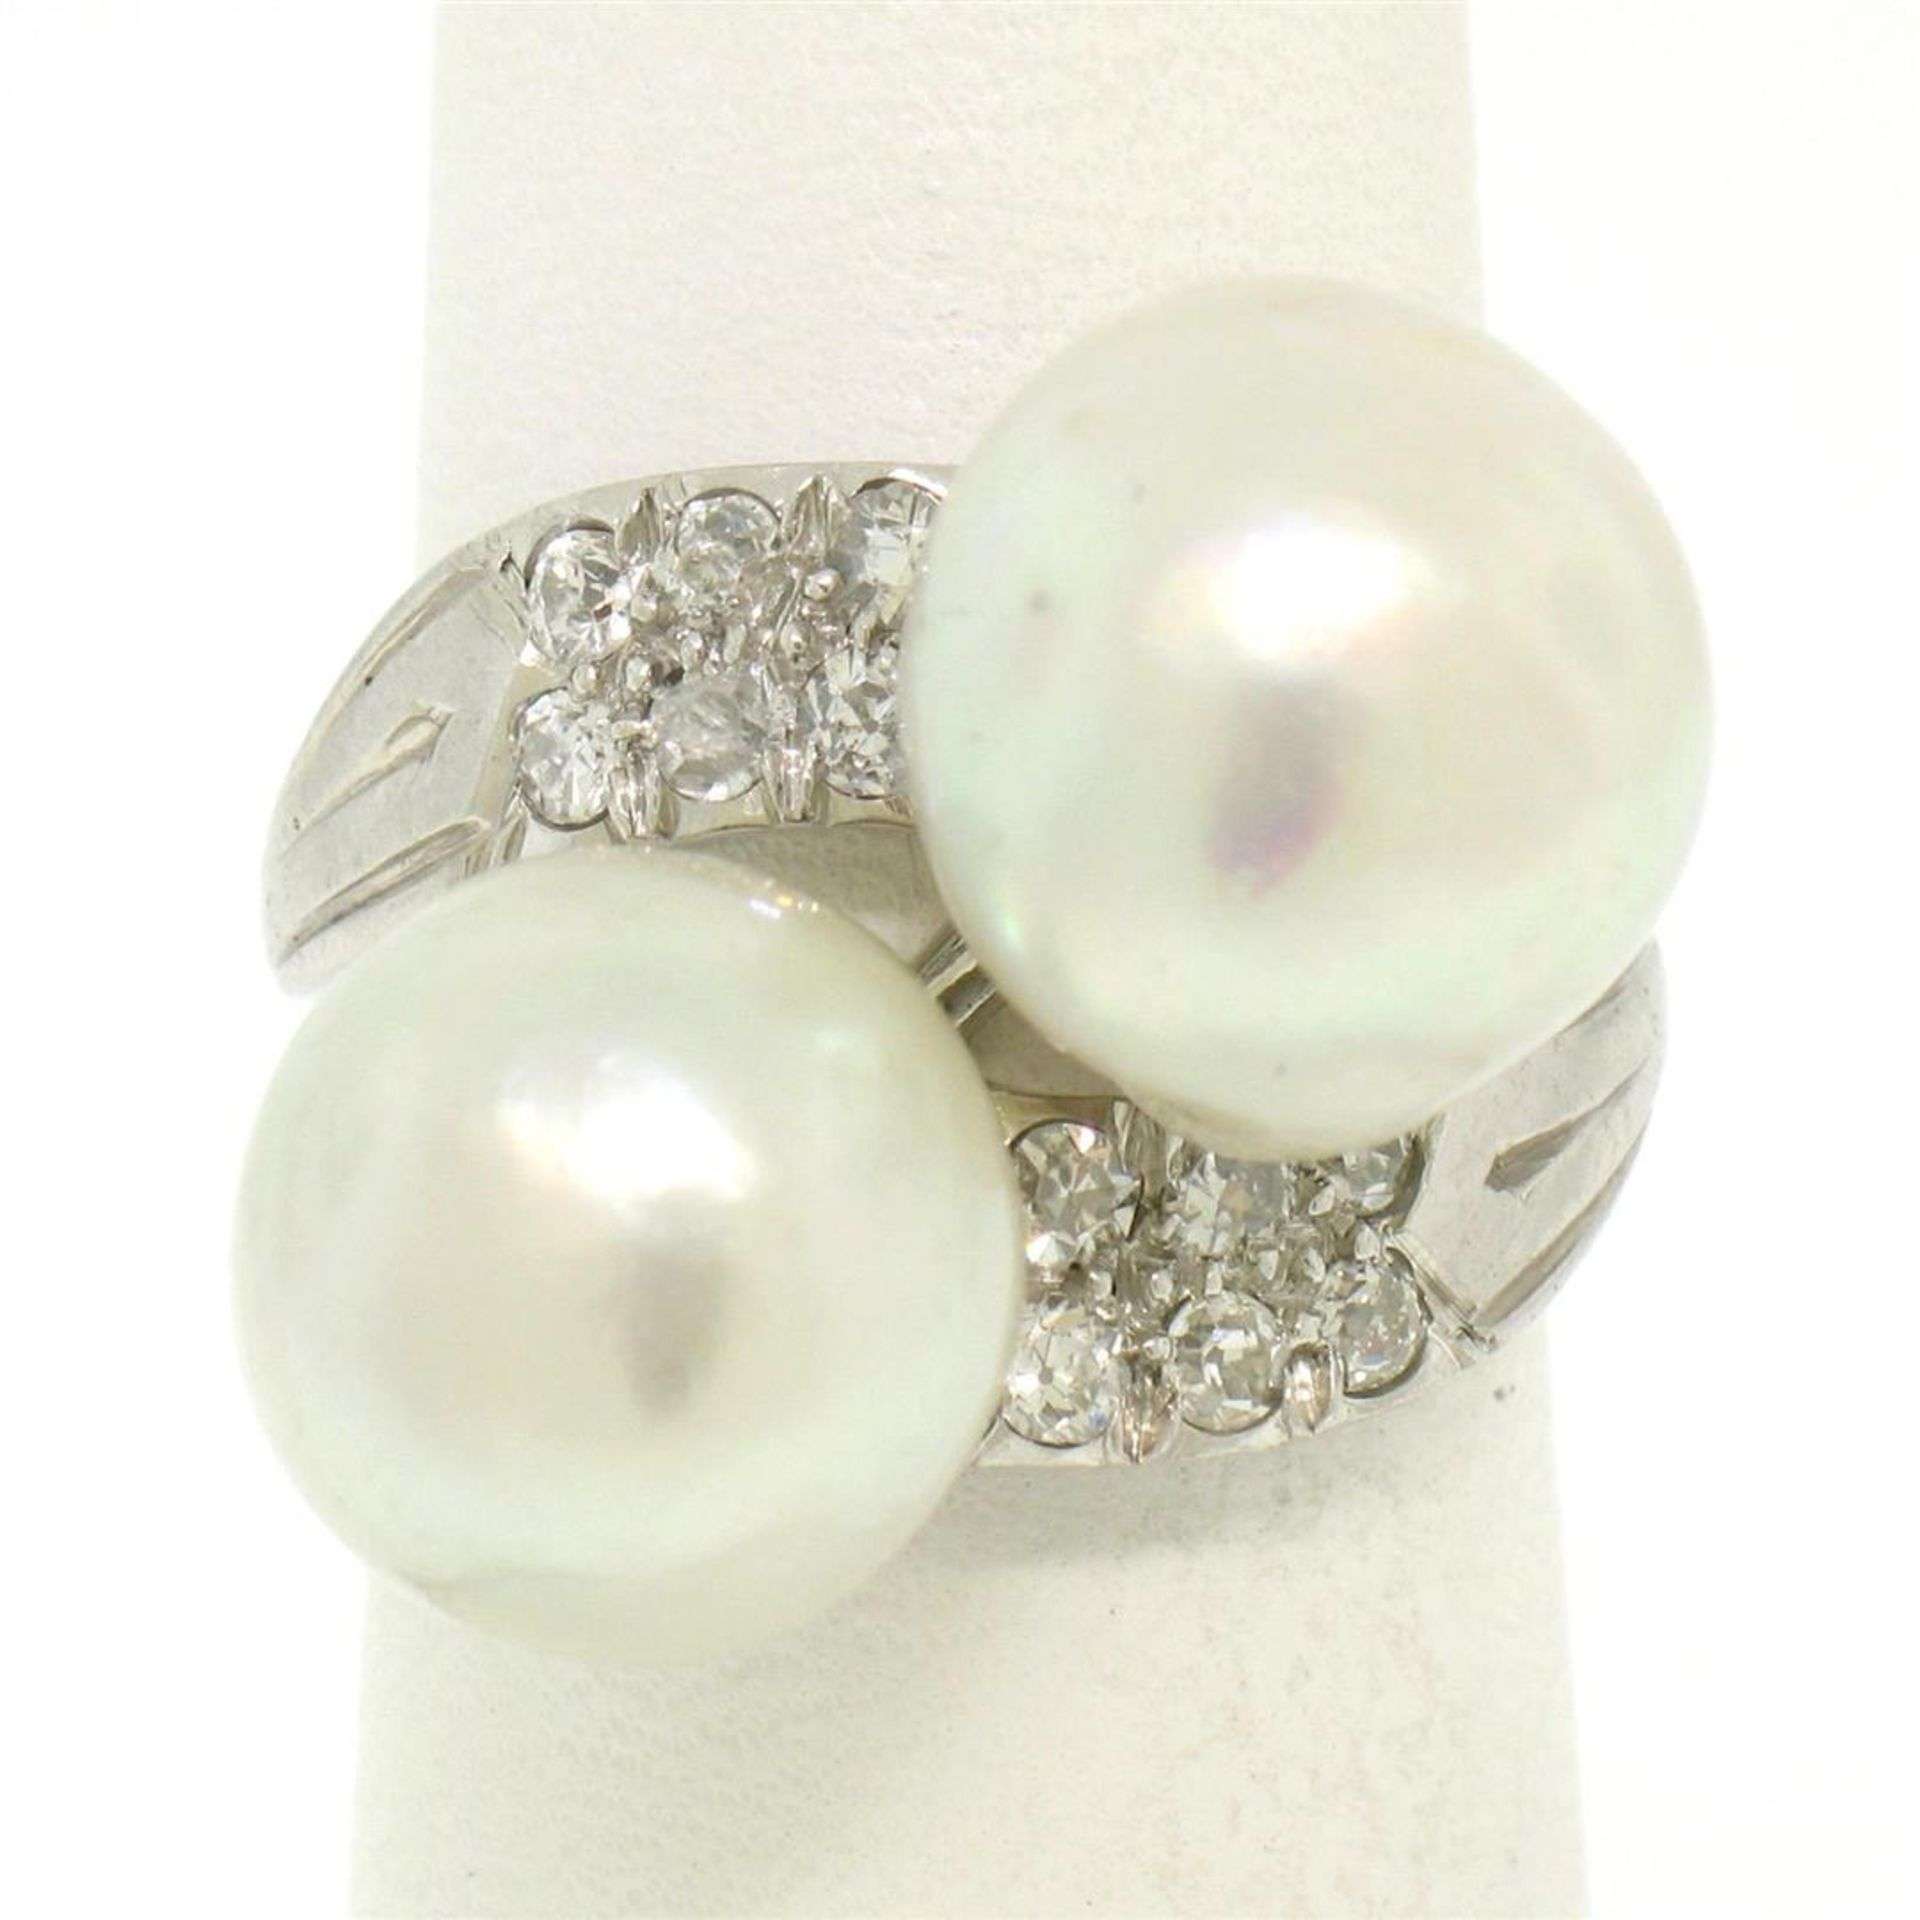 GIA Certified Solid Platinum Pearl & Diamond Bypass Cocktail Ring - Image 5 of 9